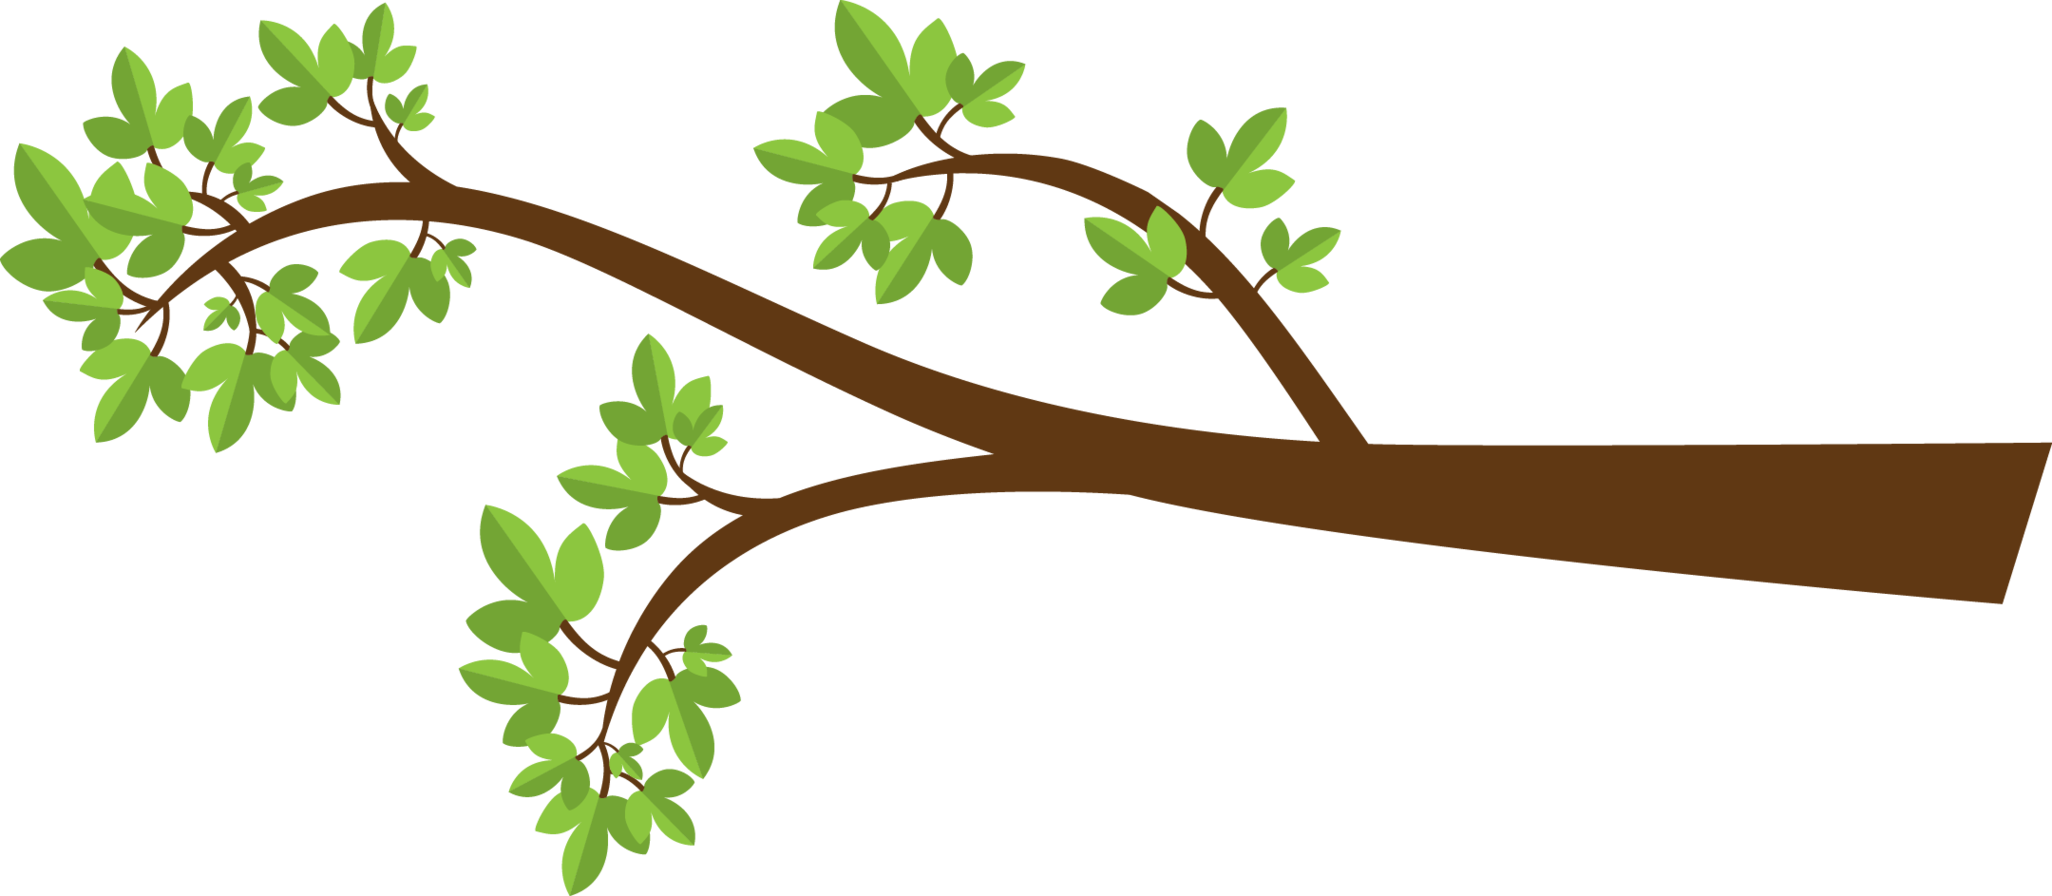 Tree Branches Clip Art. Tree Branch With-Tree Branches Clip Art. Tree Branch With Leaves .-16